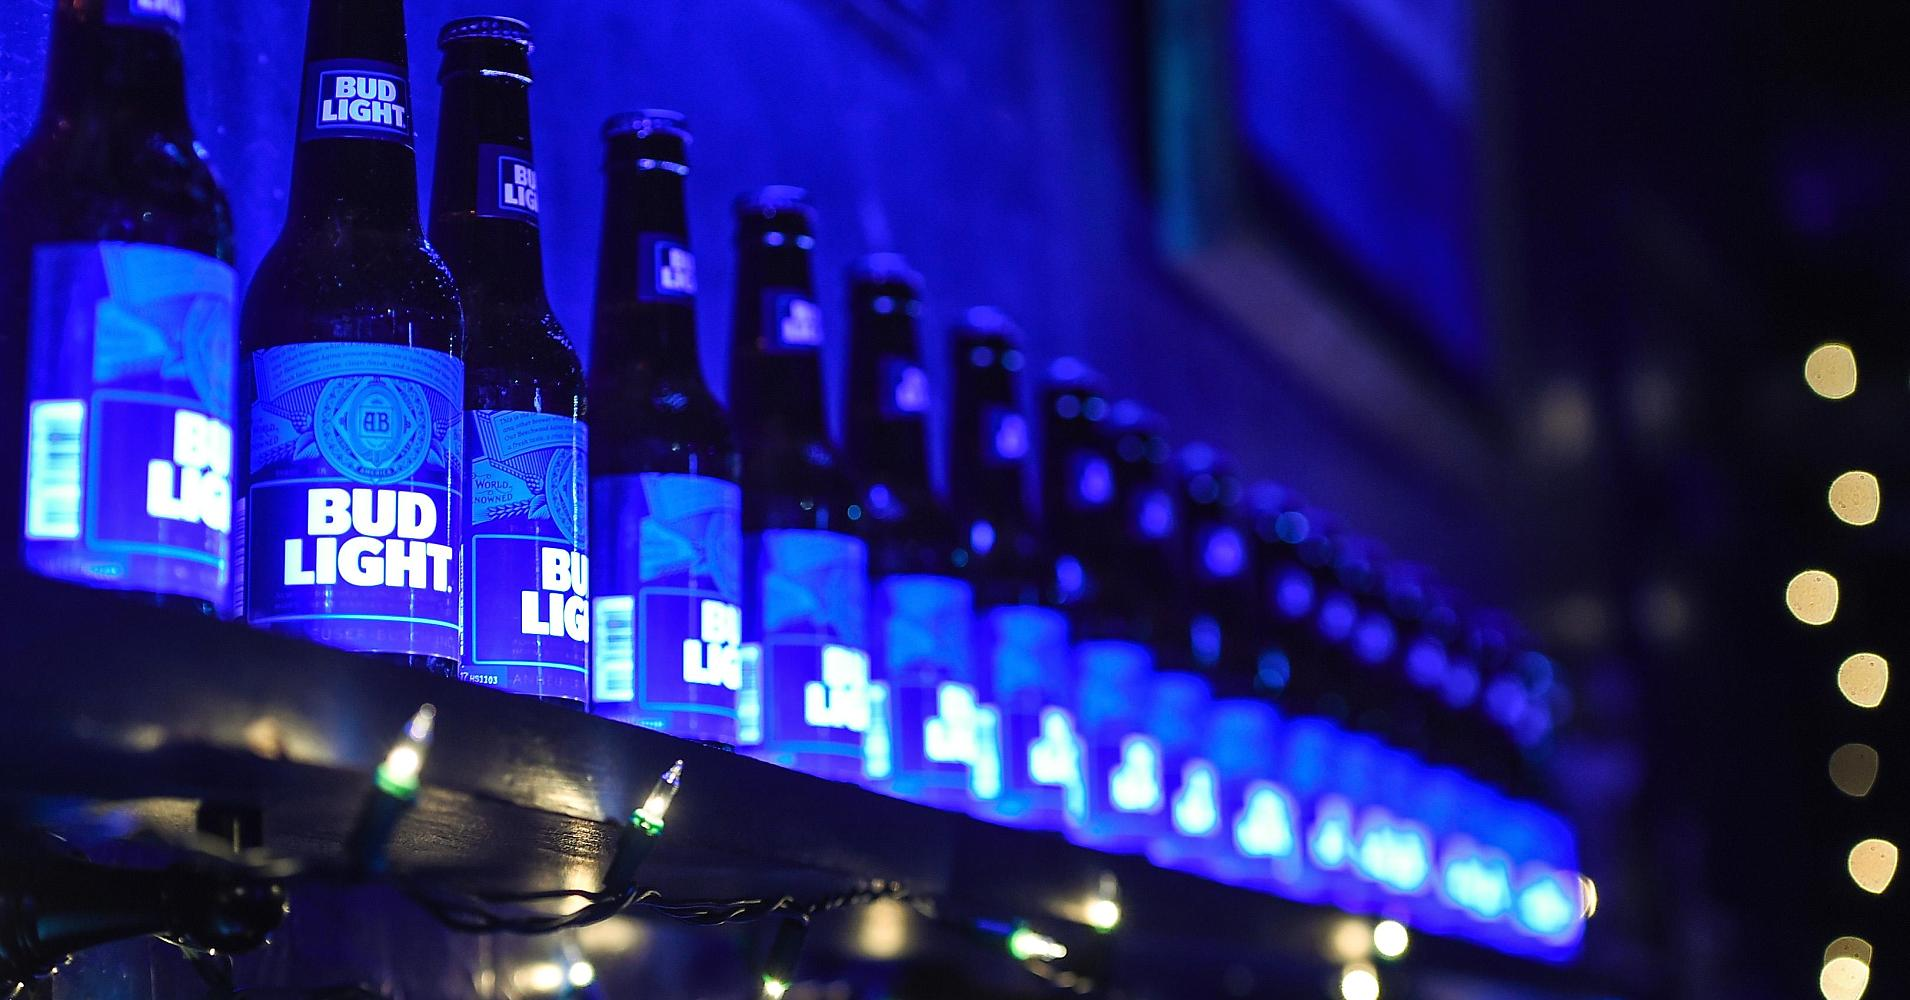 Anheuser-Busch enters into renewable energy partnership with Enel Green Power